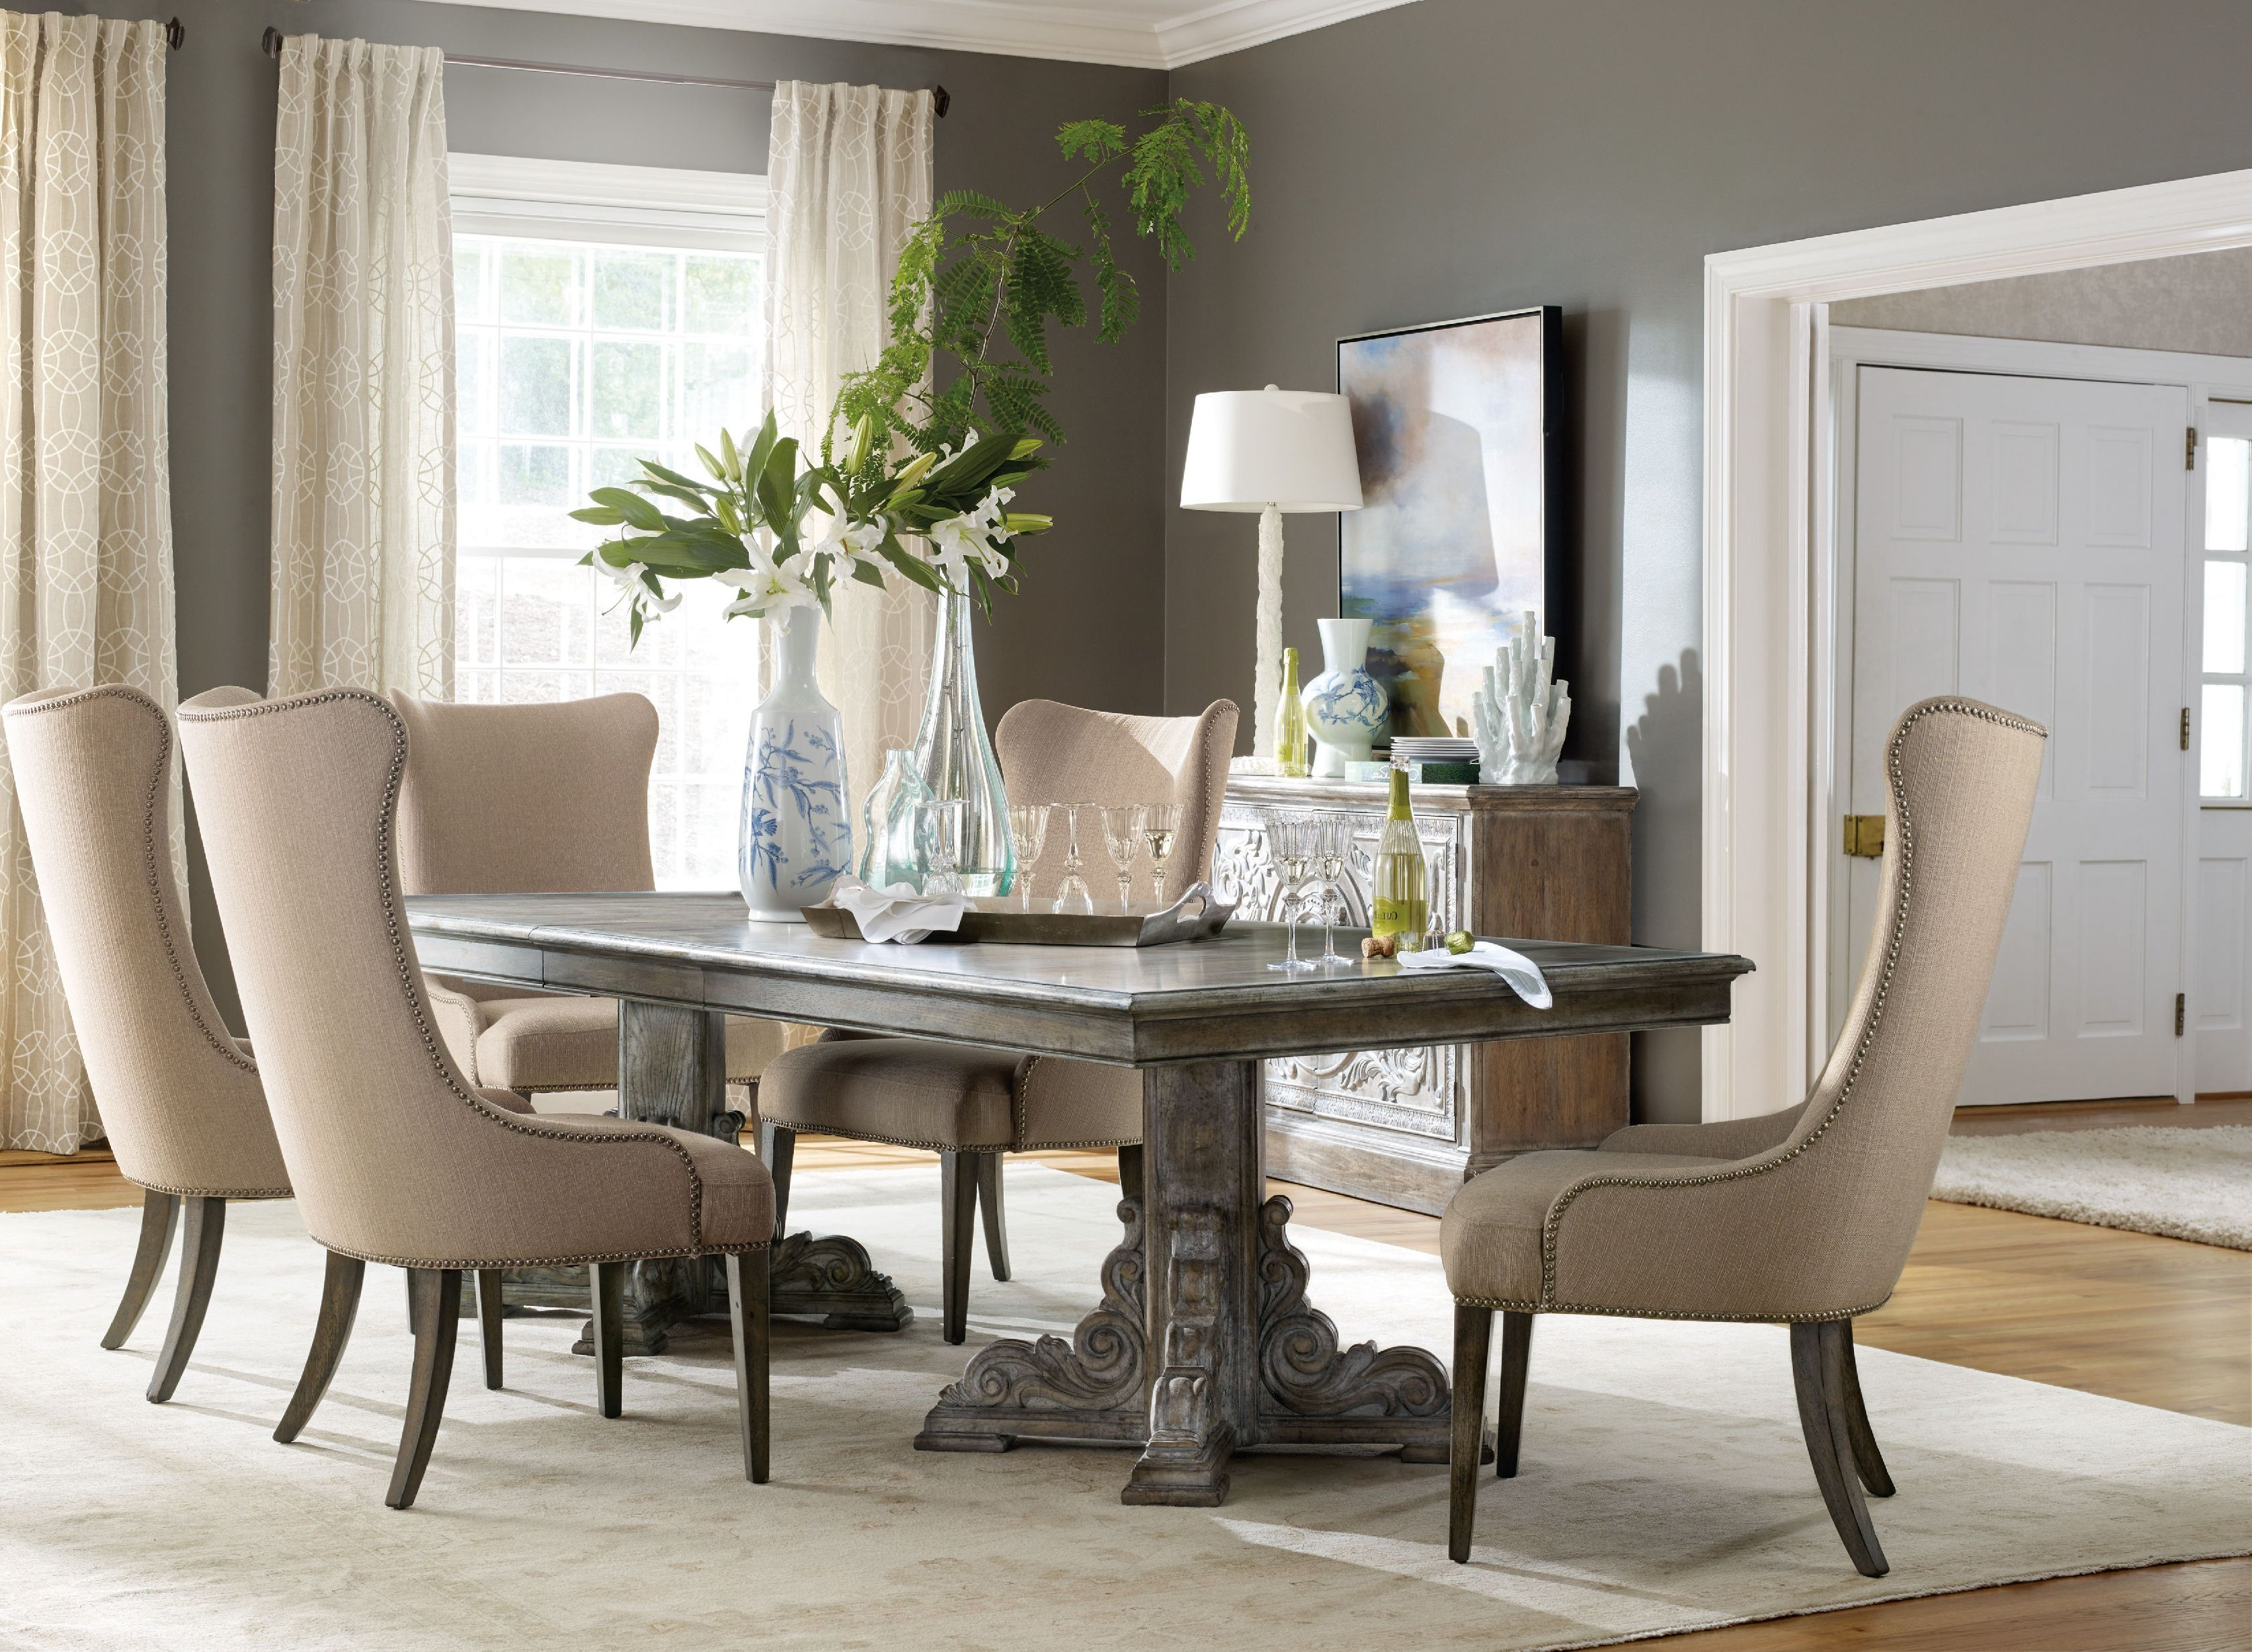 Superbe Dining Room Furniture San Antonio   Vintage Modern Furniture Check More At  Http://